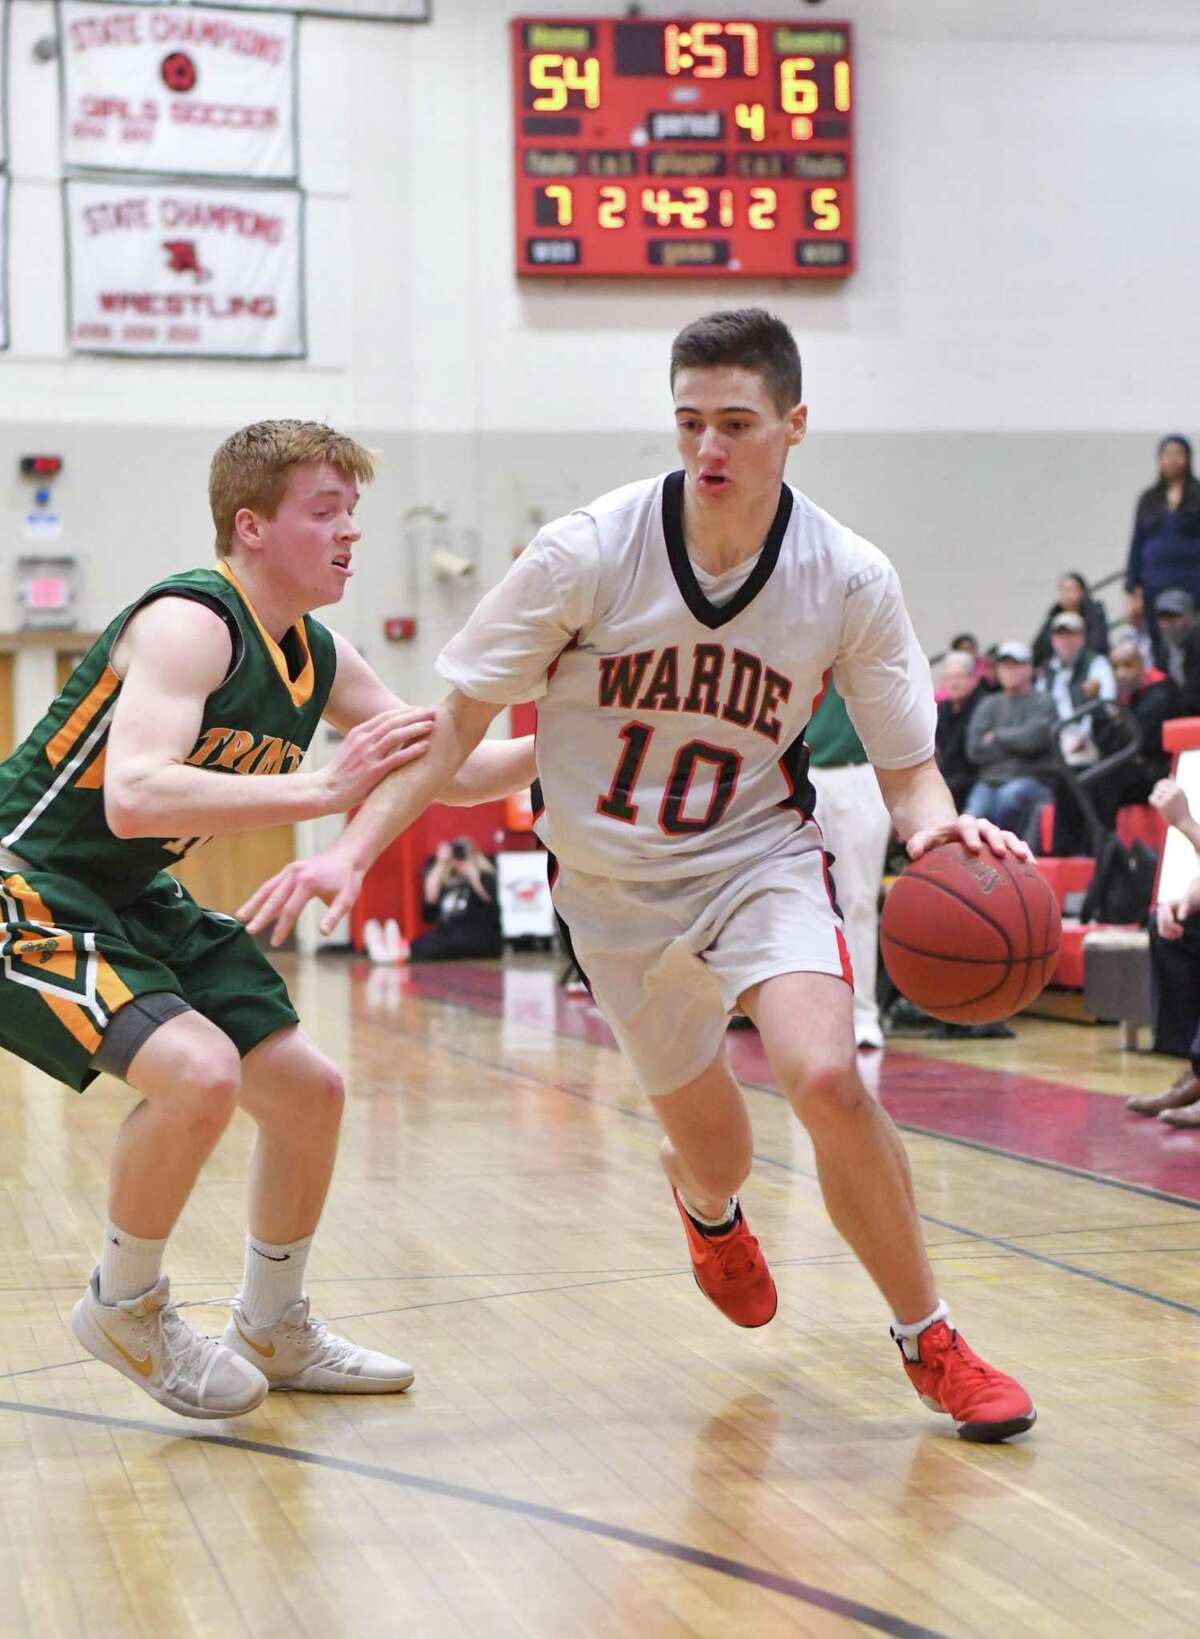 Fairfield Warde's Sean Conway, right, will play for the Connecticut team on Sunday in the JCC Classic at the Cardinal Shehan Center.